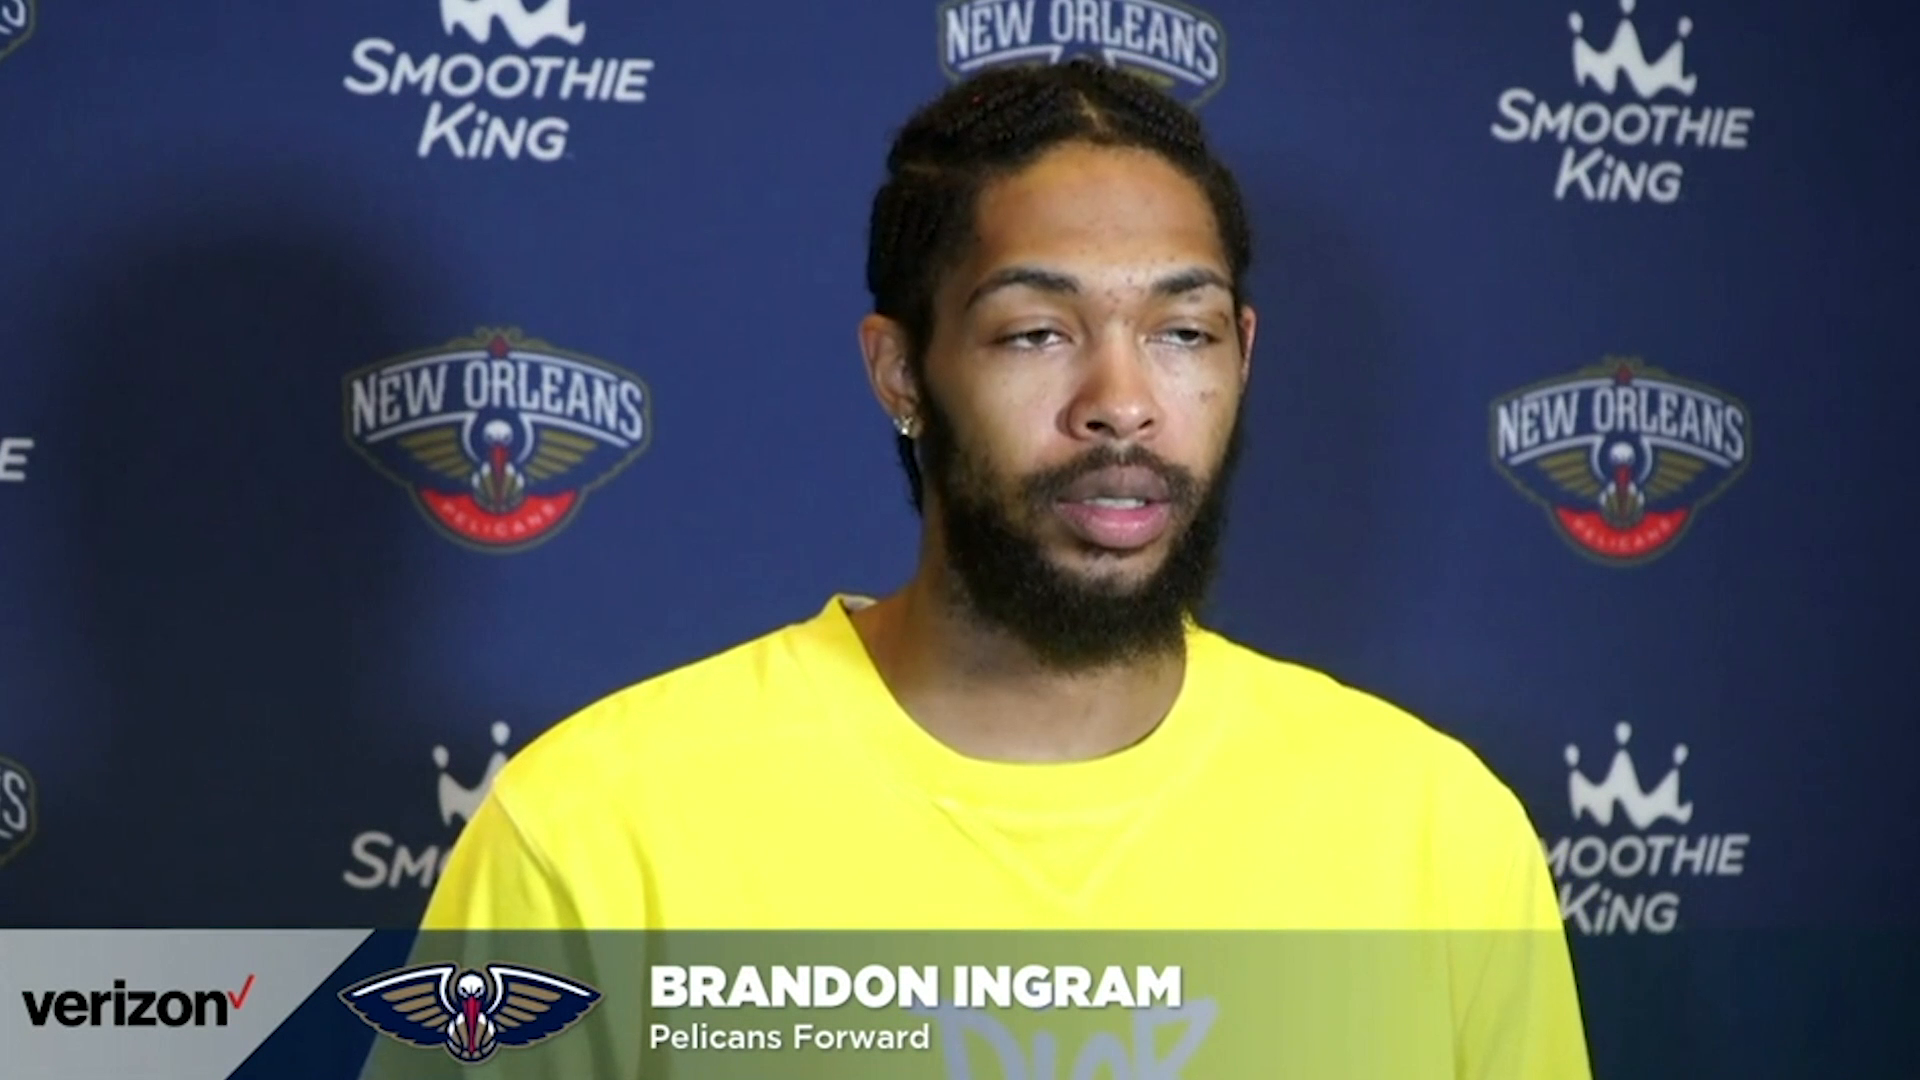 Pelicans- Kings Postgame Interview: Brandon Ingram 4-12-21